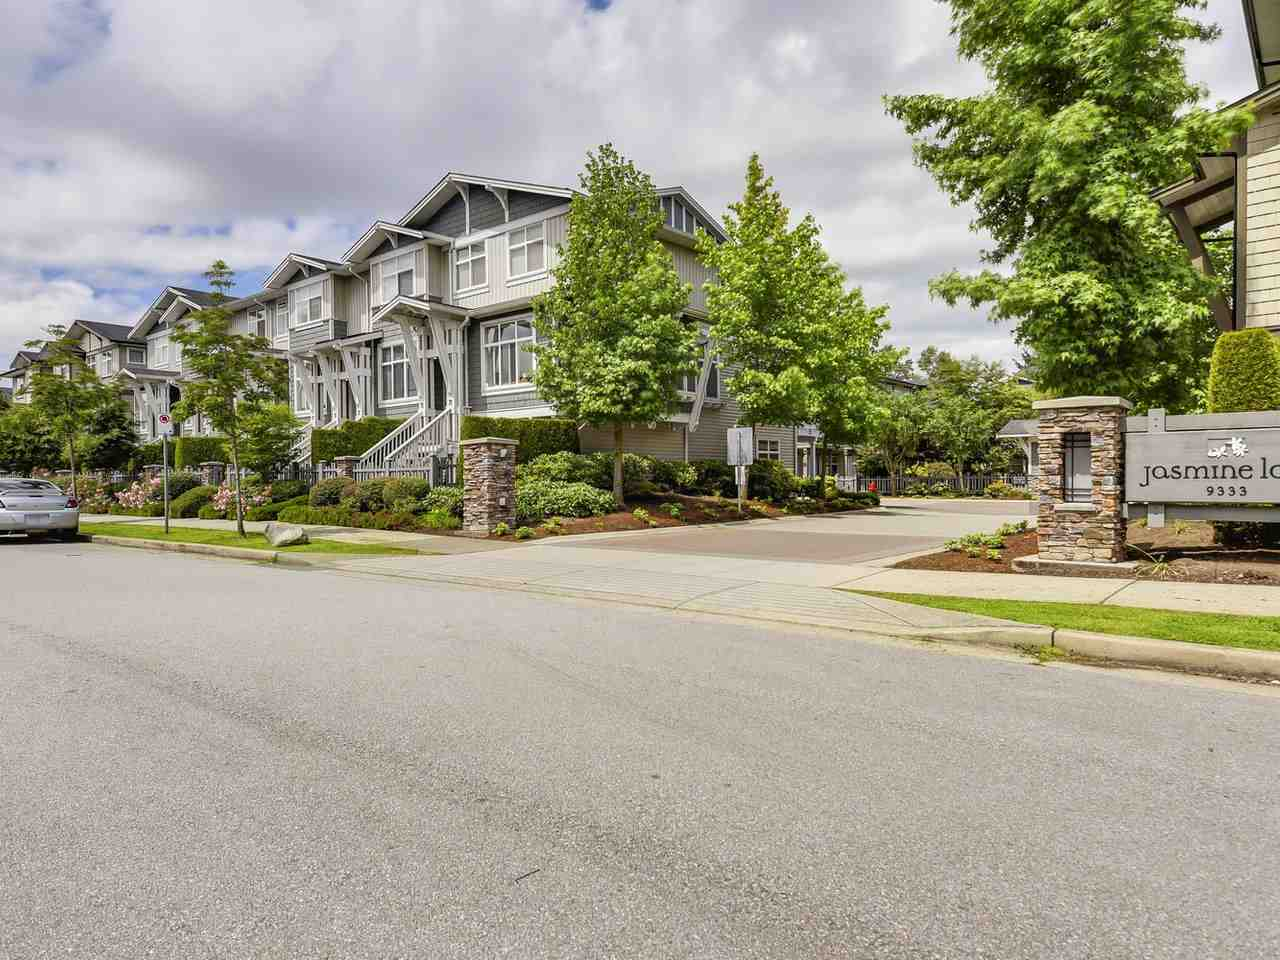 "Main Photo: 47 9333 SILLS Avenue in Richmond: McLennan North Townhouse for sale in ""Jasmine Lane"" : MLS(r) # R2178916"